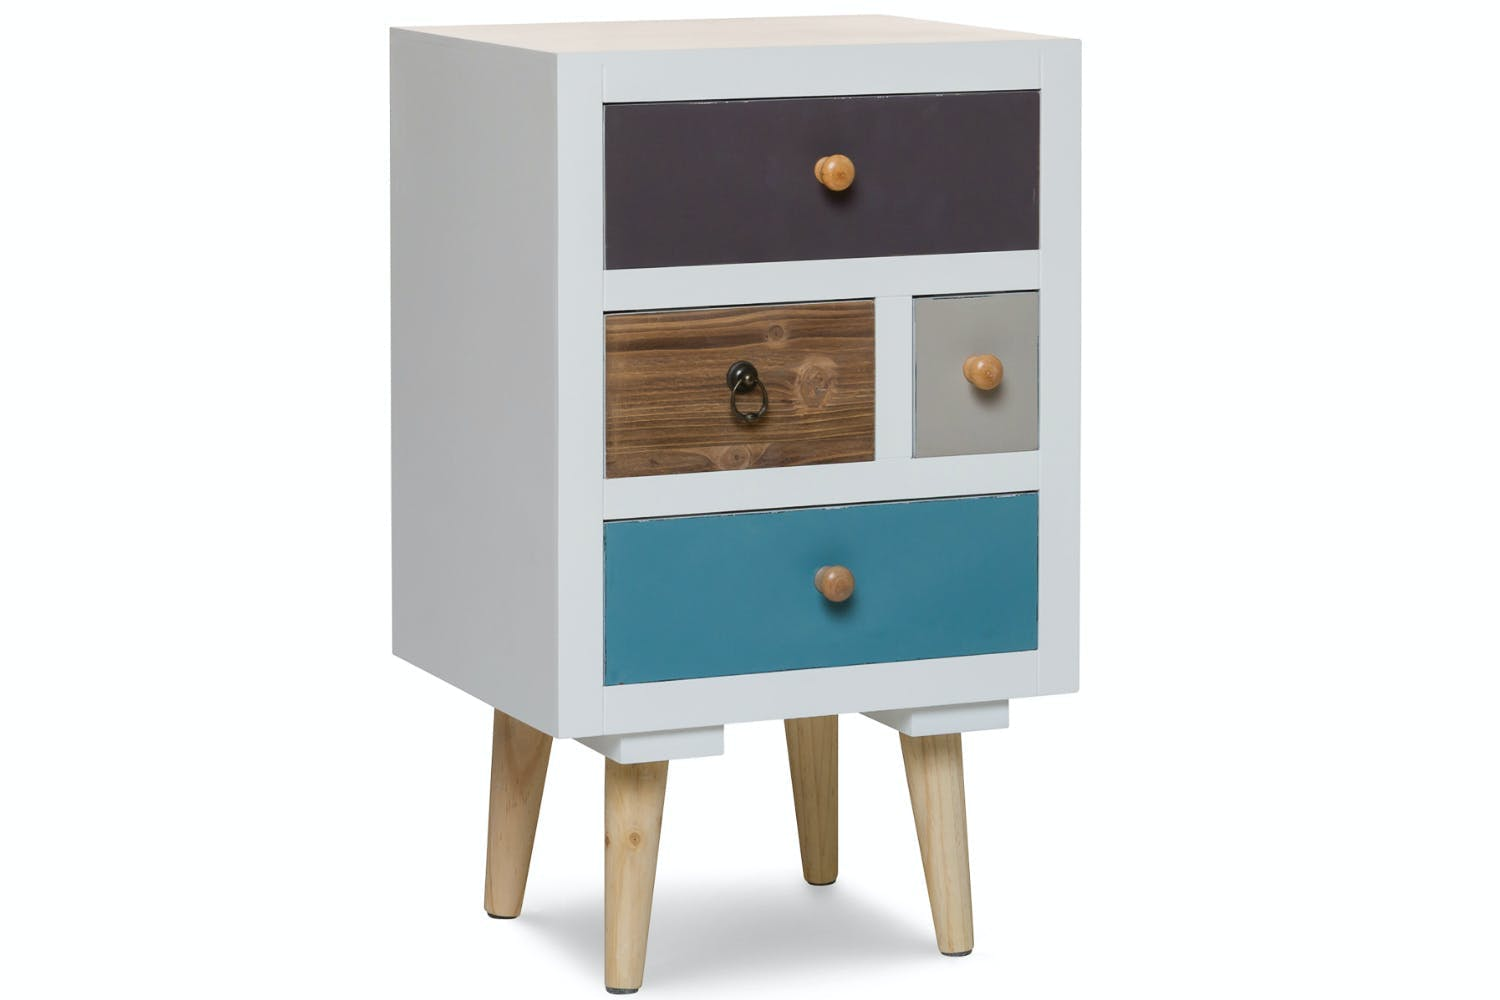 Thais 4 drawer bedside table ireland - Bedside table ...